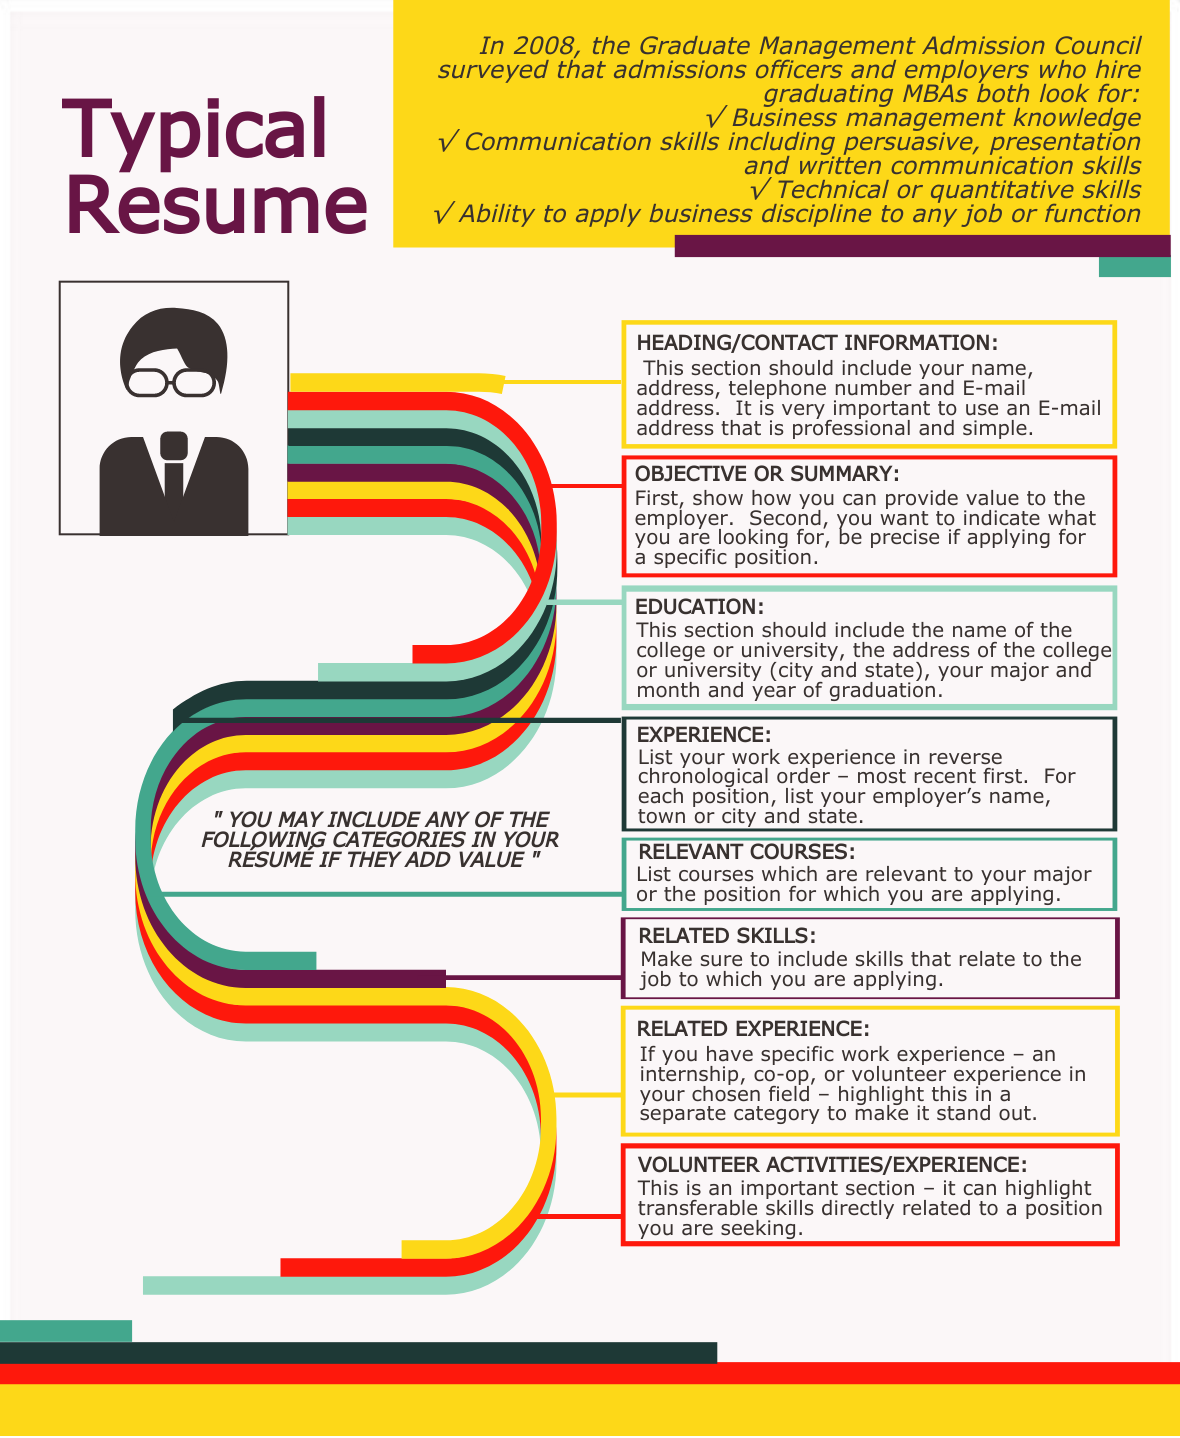 How An MBA Applicant's Resume Looks Like, Difference